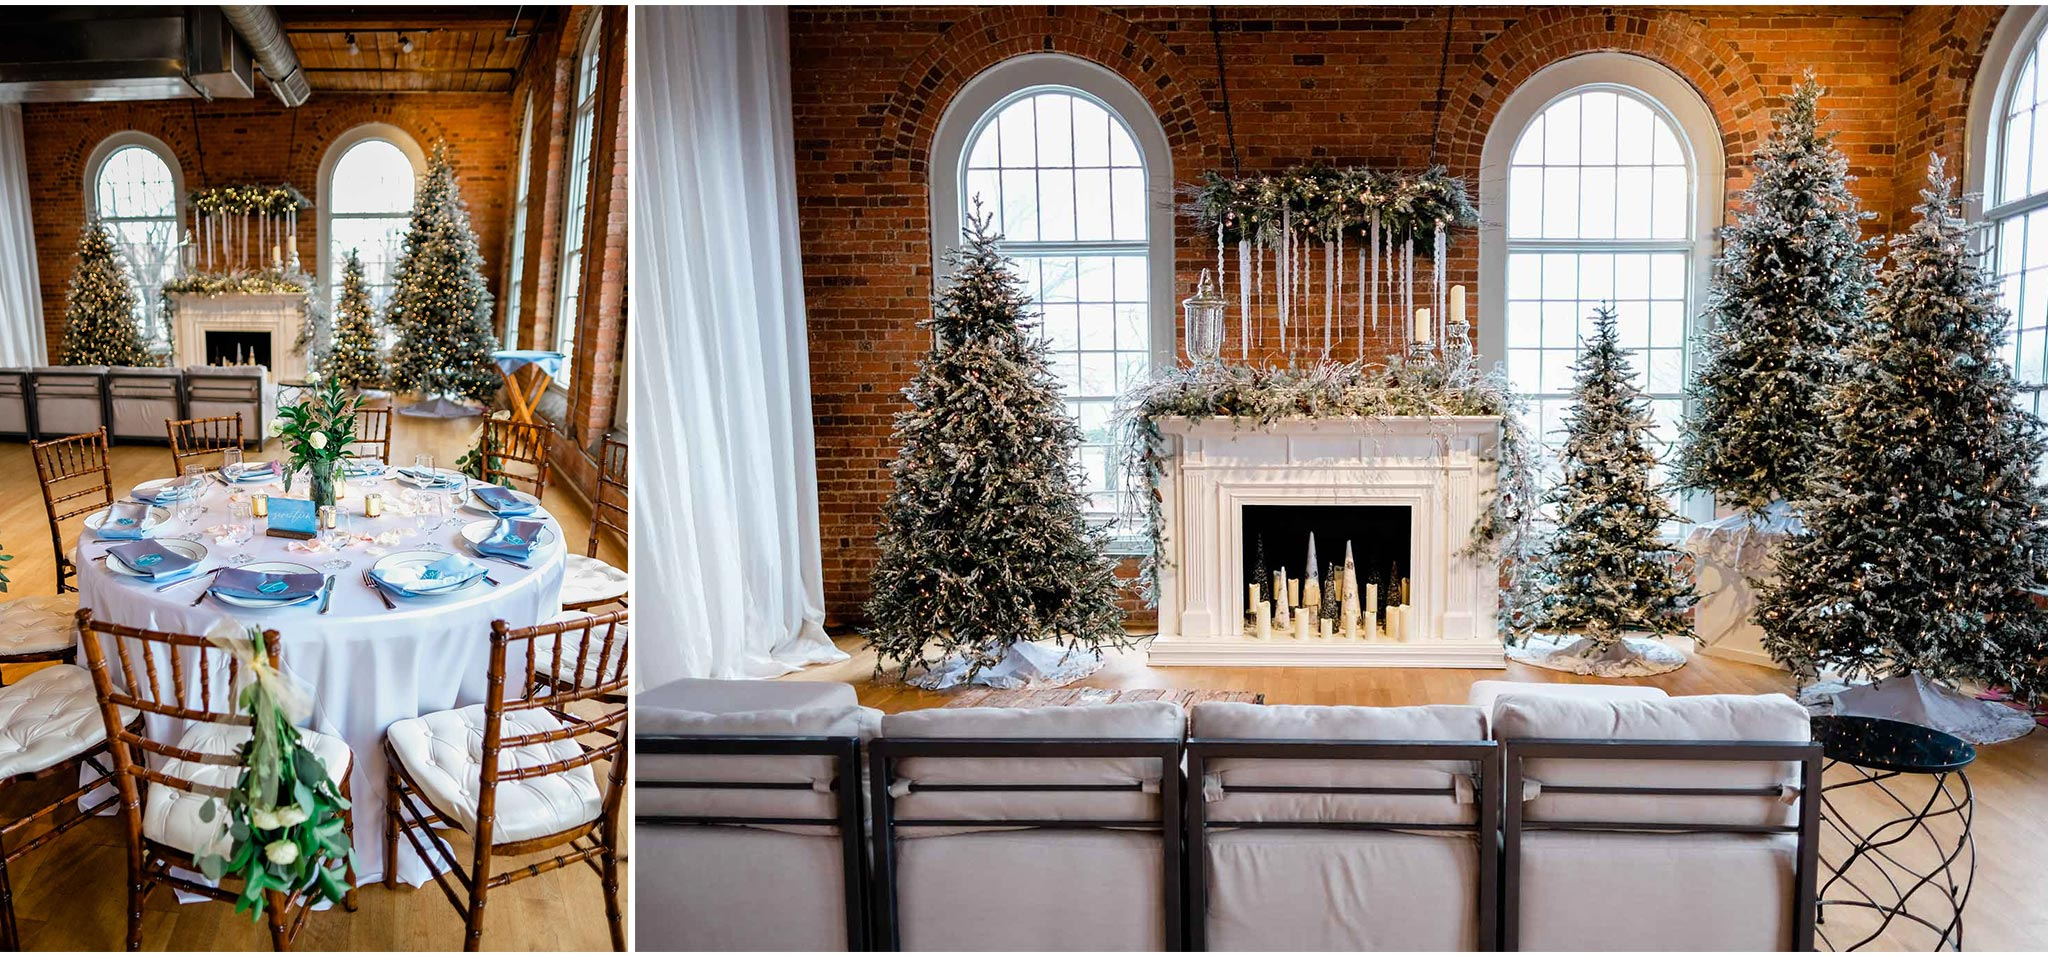 Winter wedding decor at The Cotton Room | Durham Wedding Photographer | By G. Lin Photography